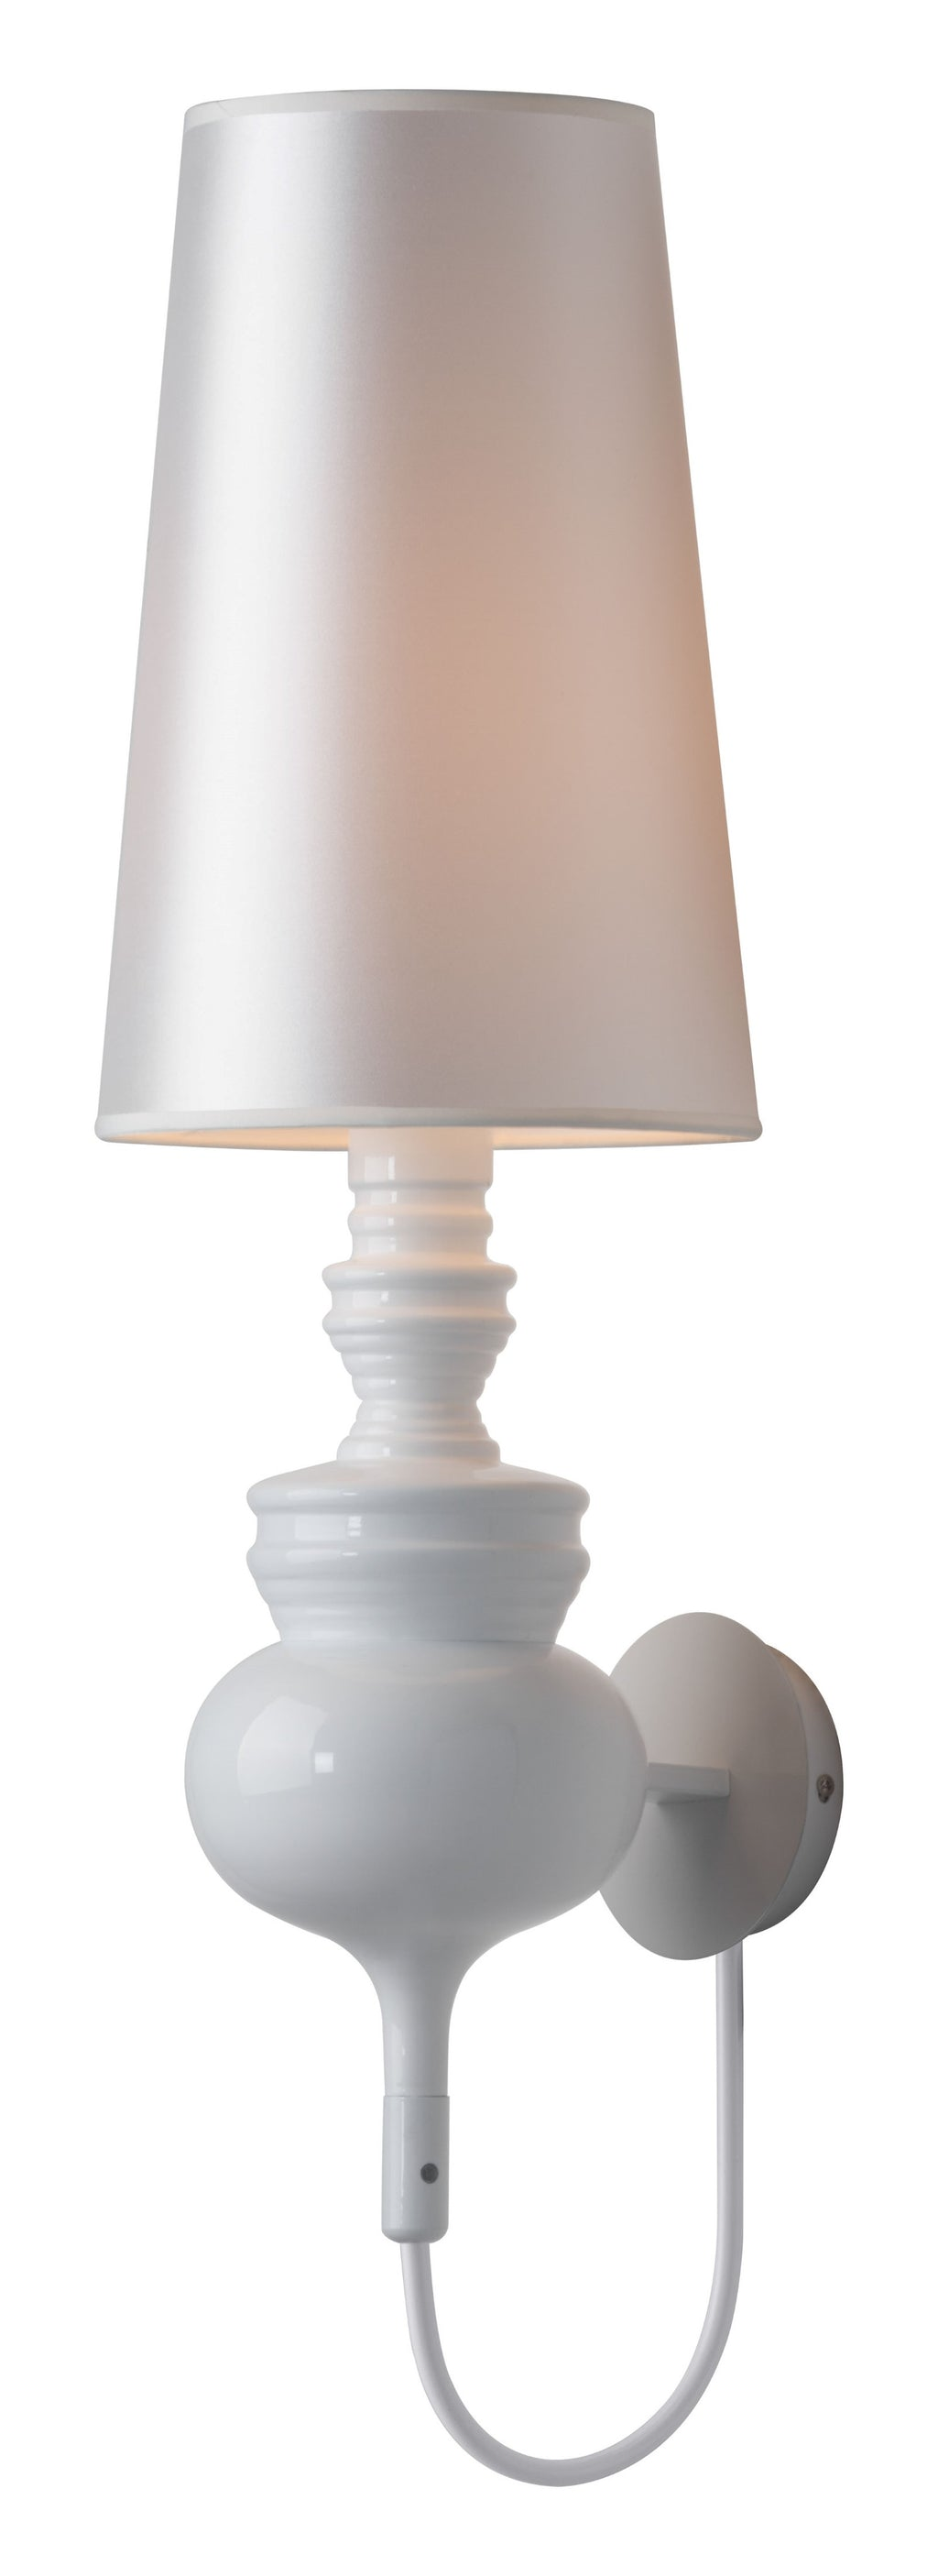 Idea Wall Lamp (White)